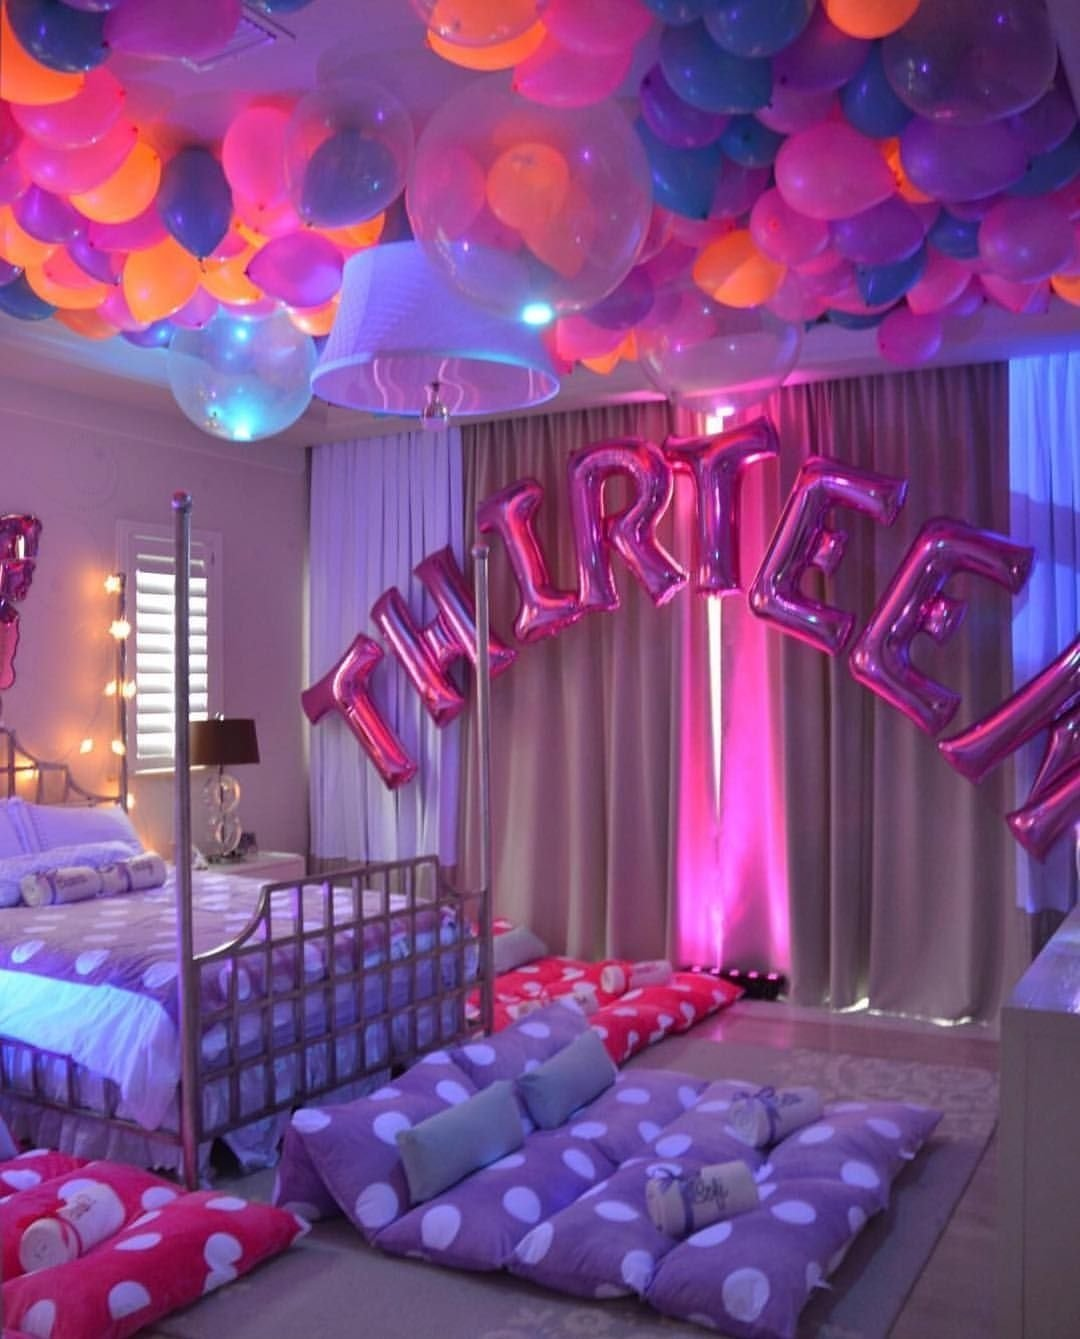 10 Wonderful Party Ideas For A 13 Year Old the cutest birthday look for a 13 year old girlcenter stage 2 2020